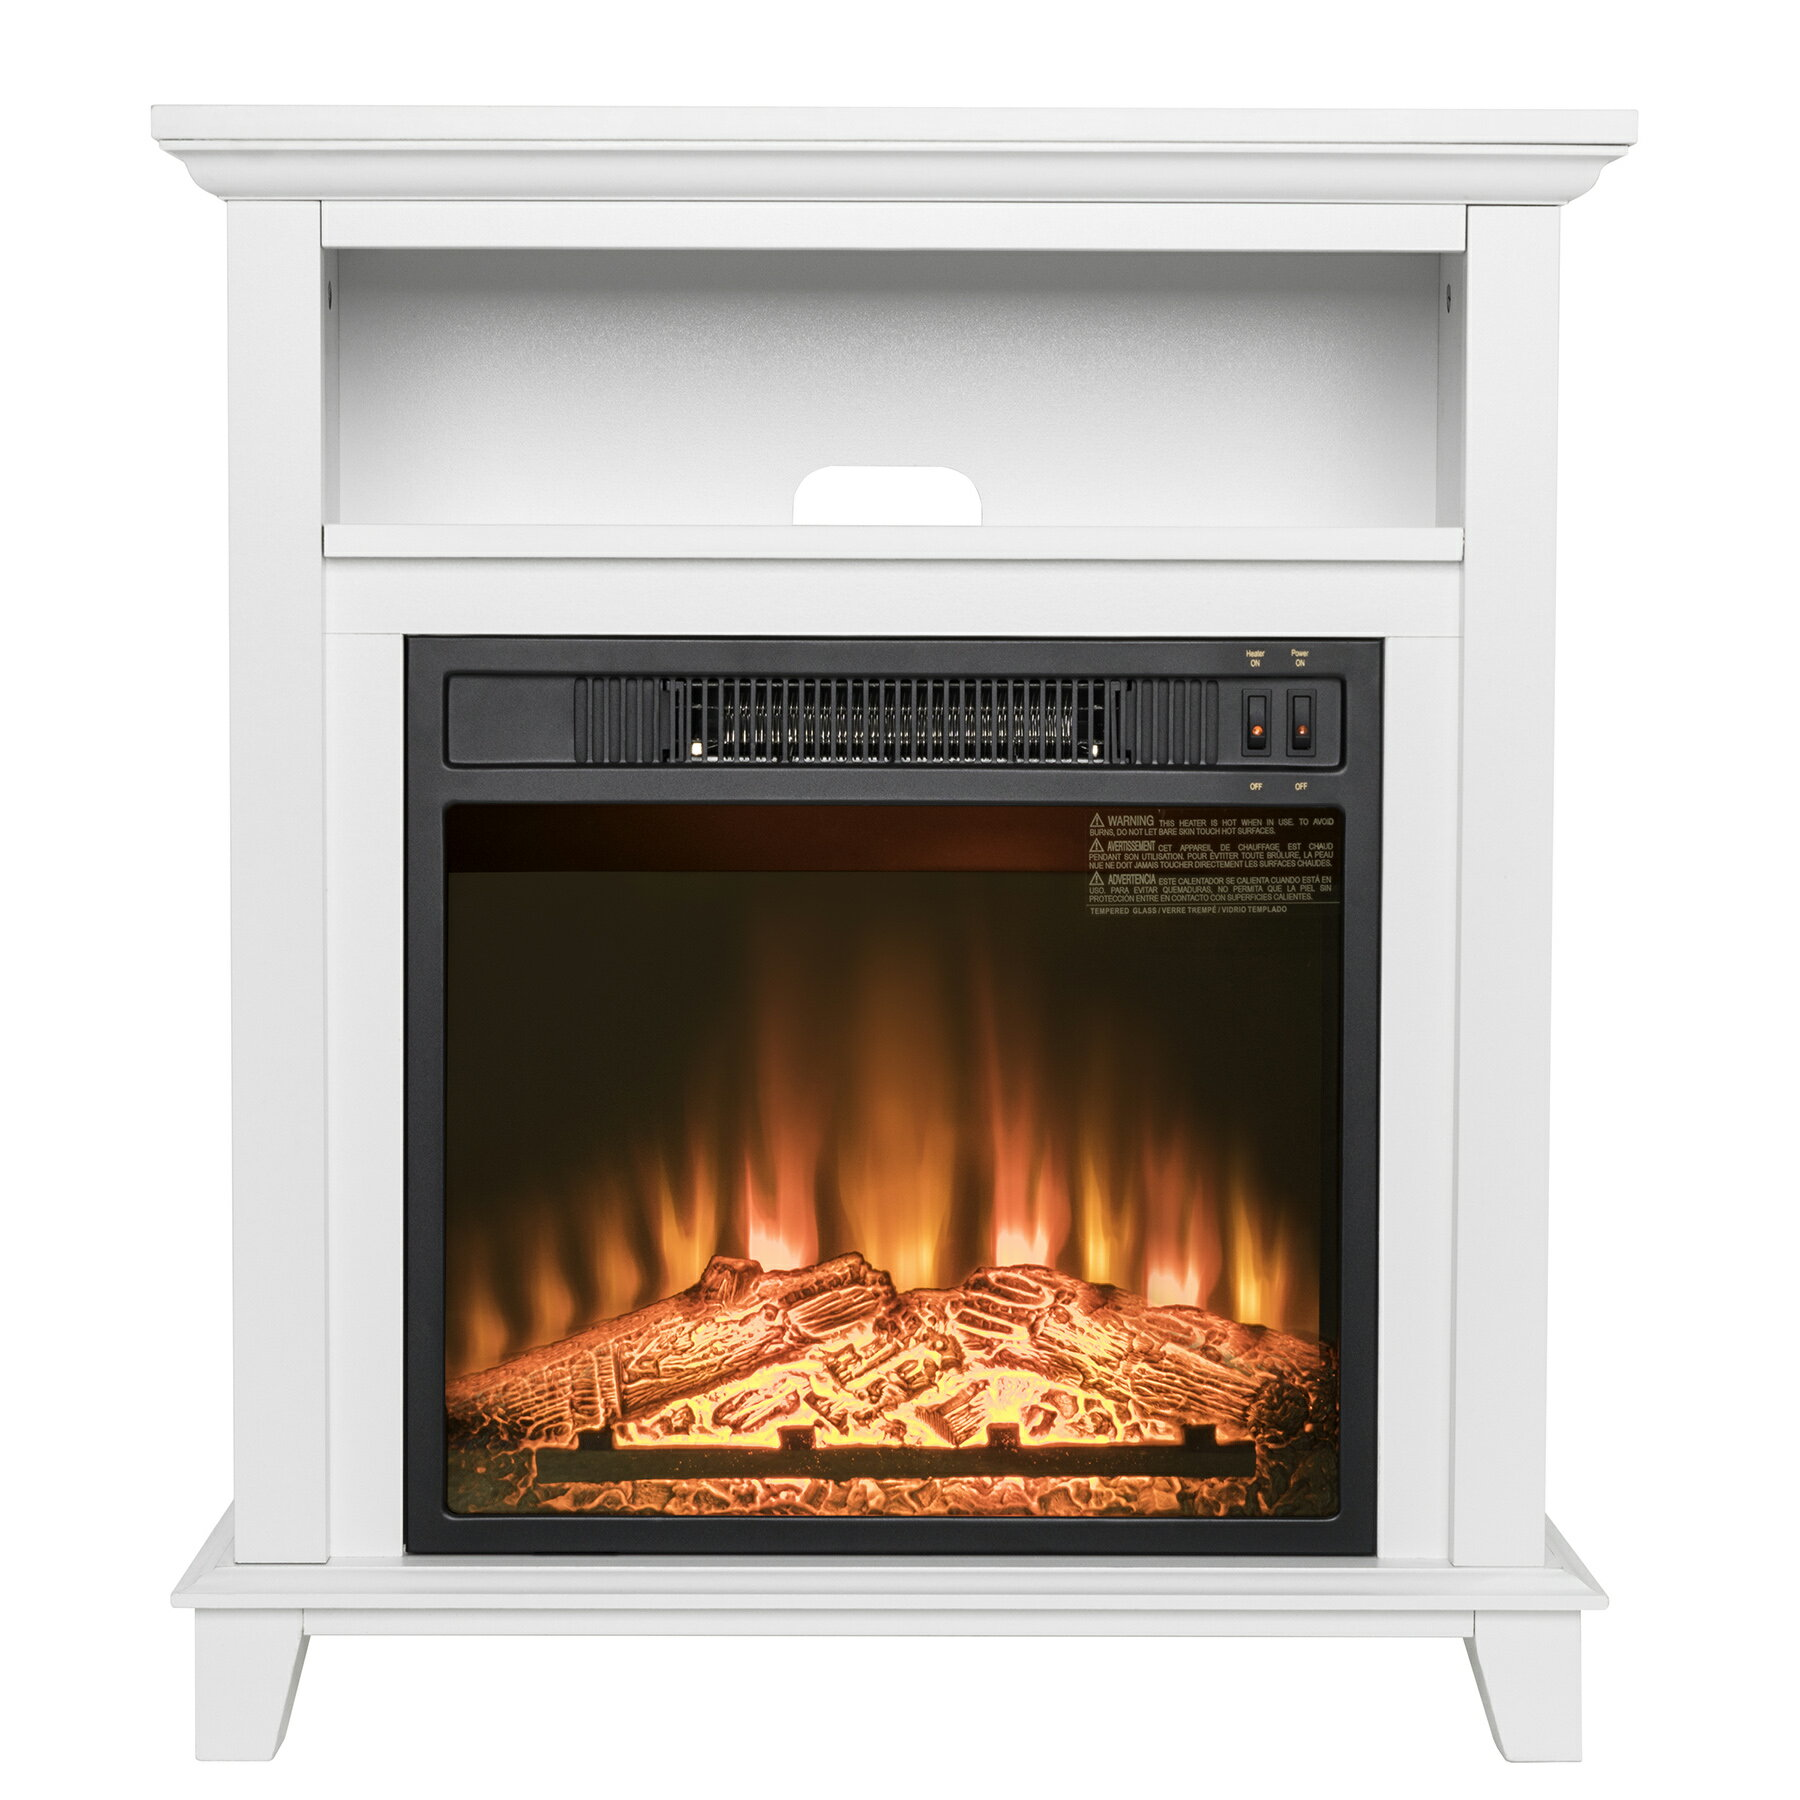 AKDY White Wooden Mantel Shelf Freestanding Electric Fireplace Stove Heater 0